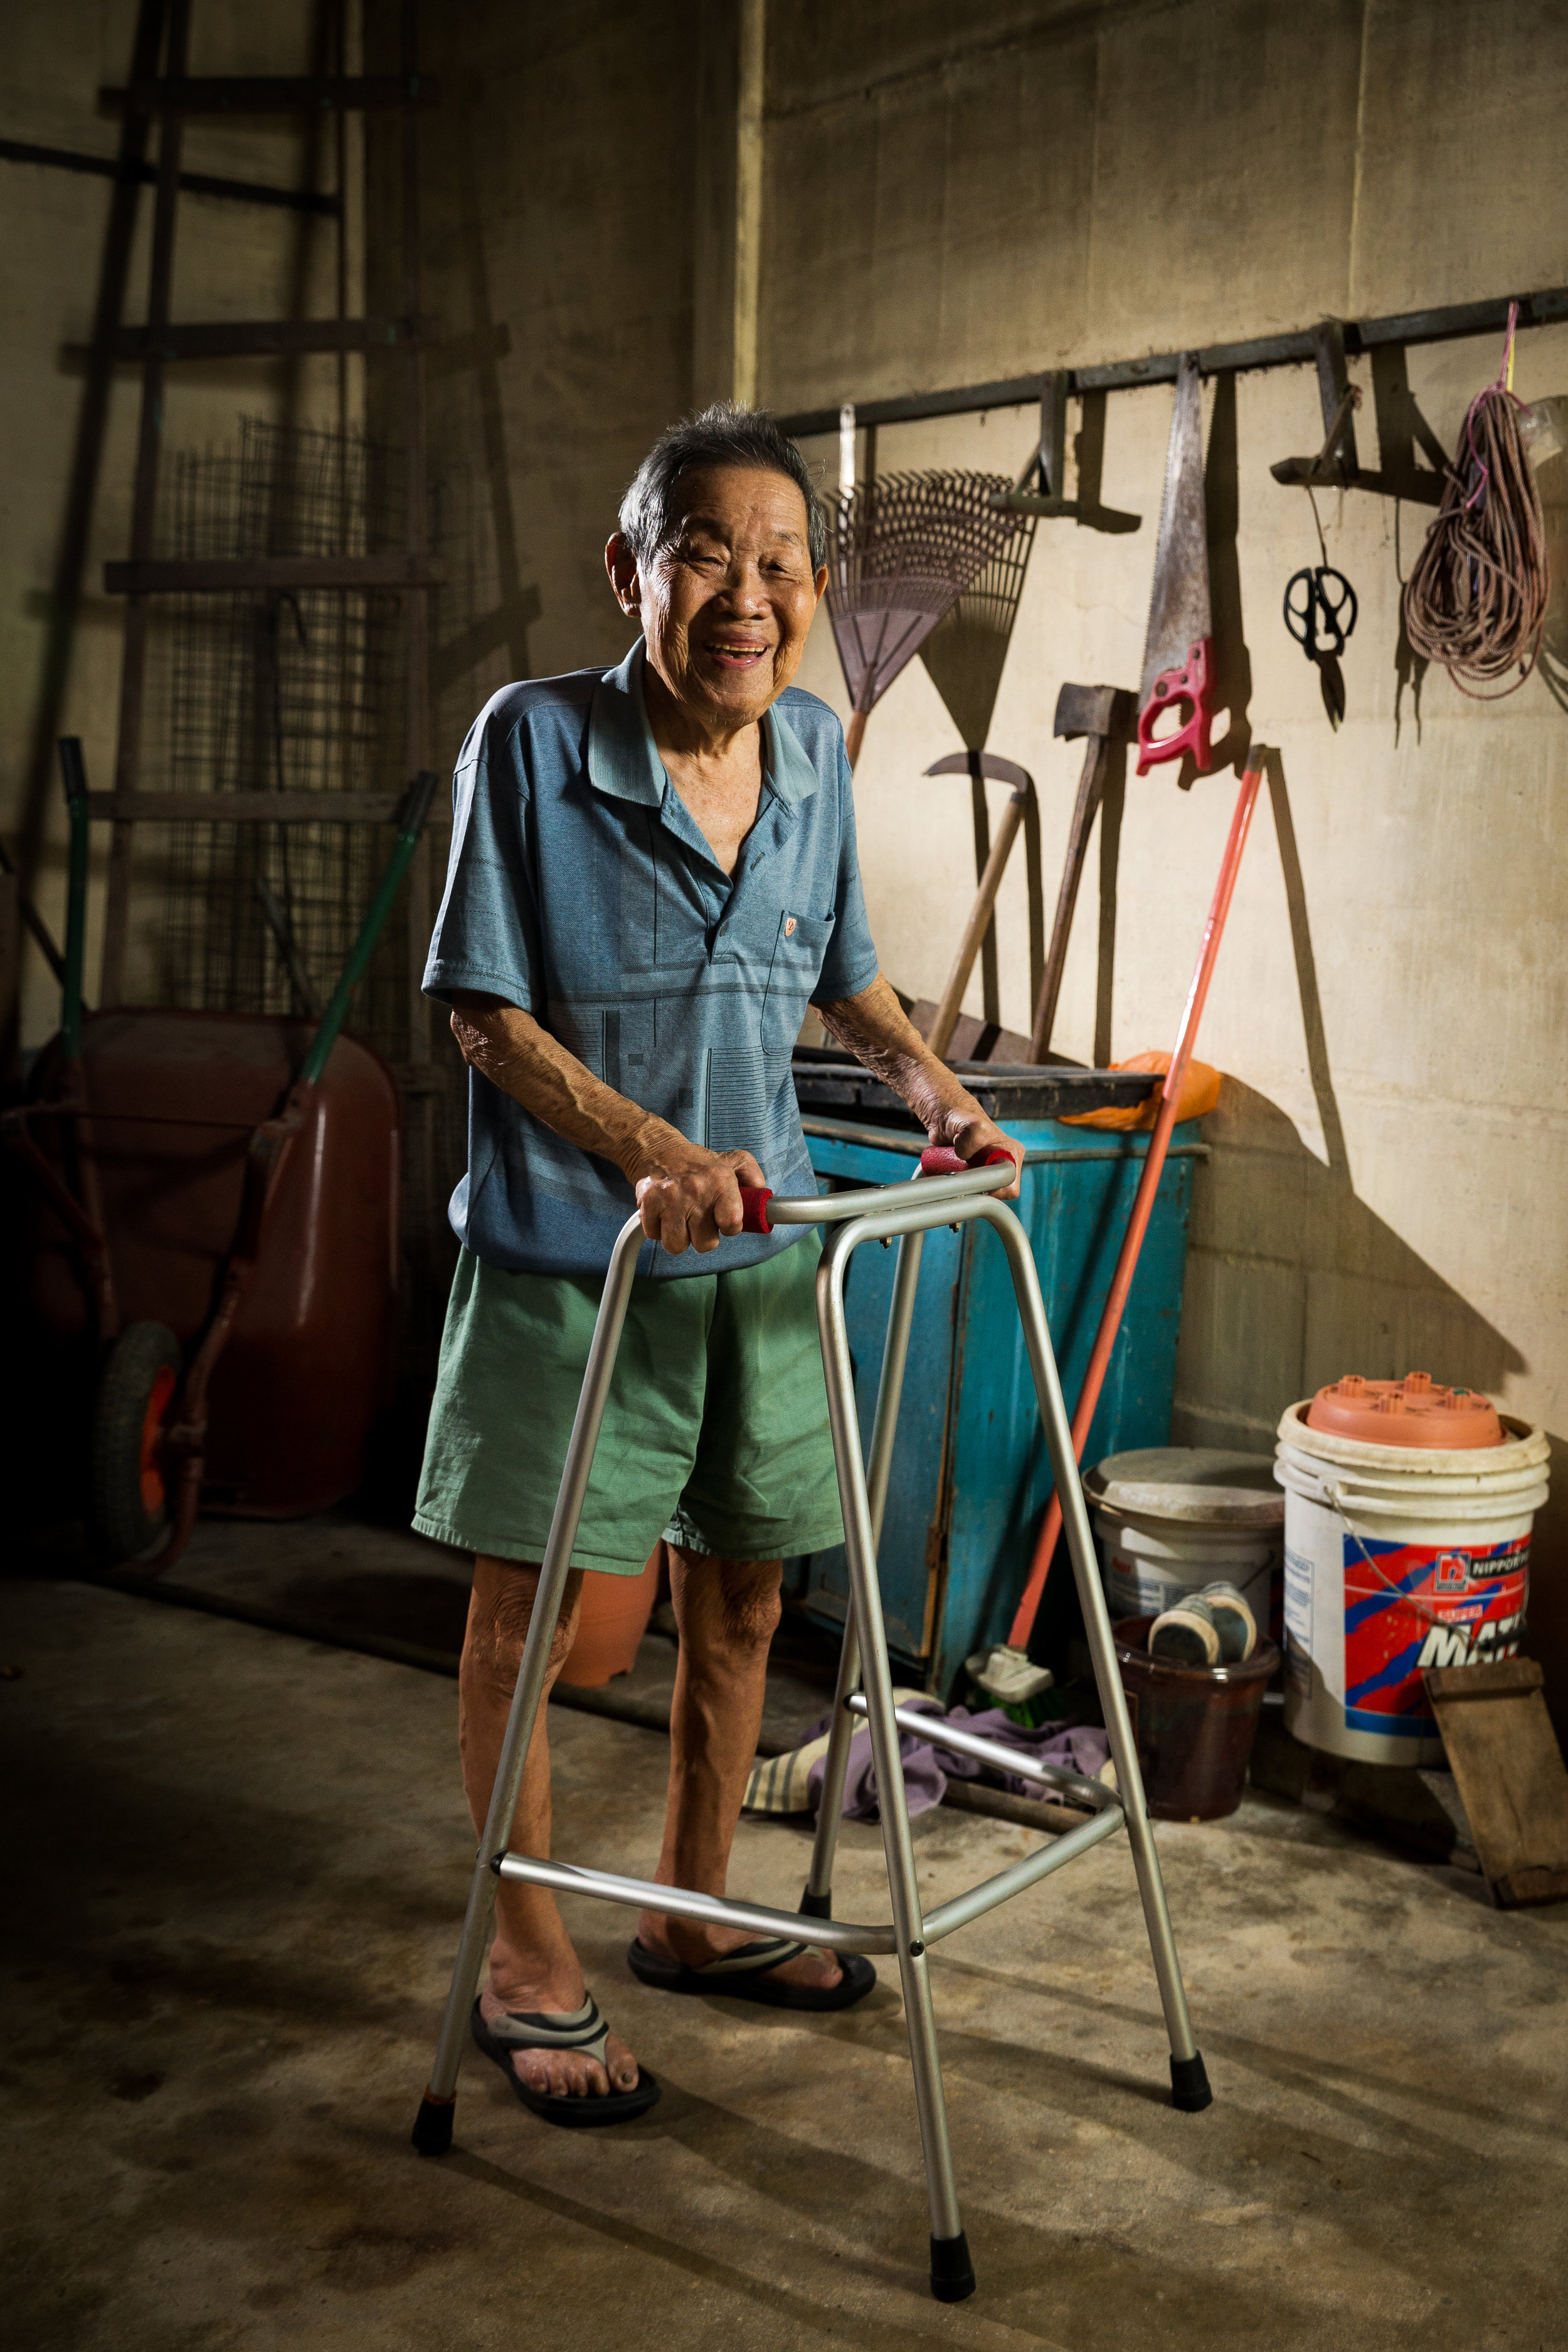 Ng Keng Chai uses the walker to move about. (photo by Mango Loke)